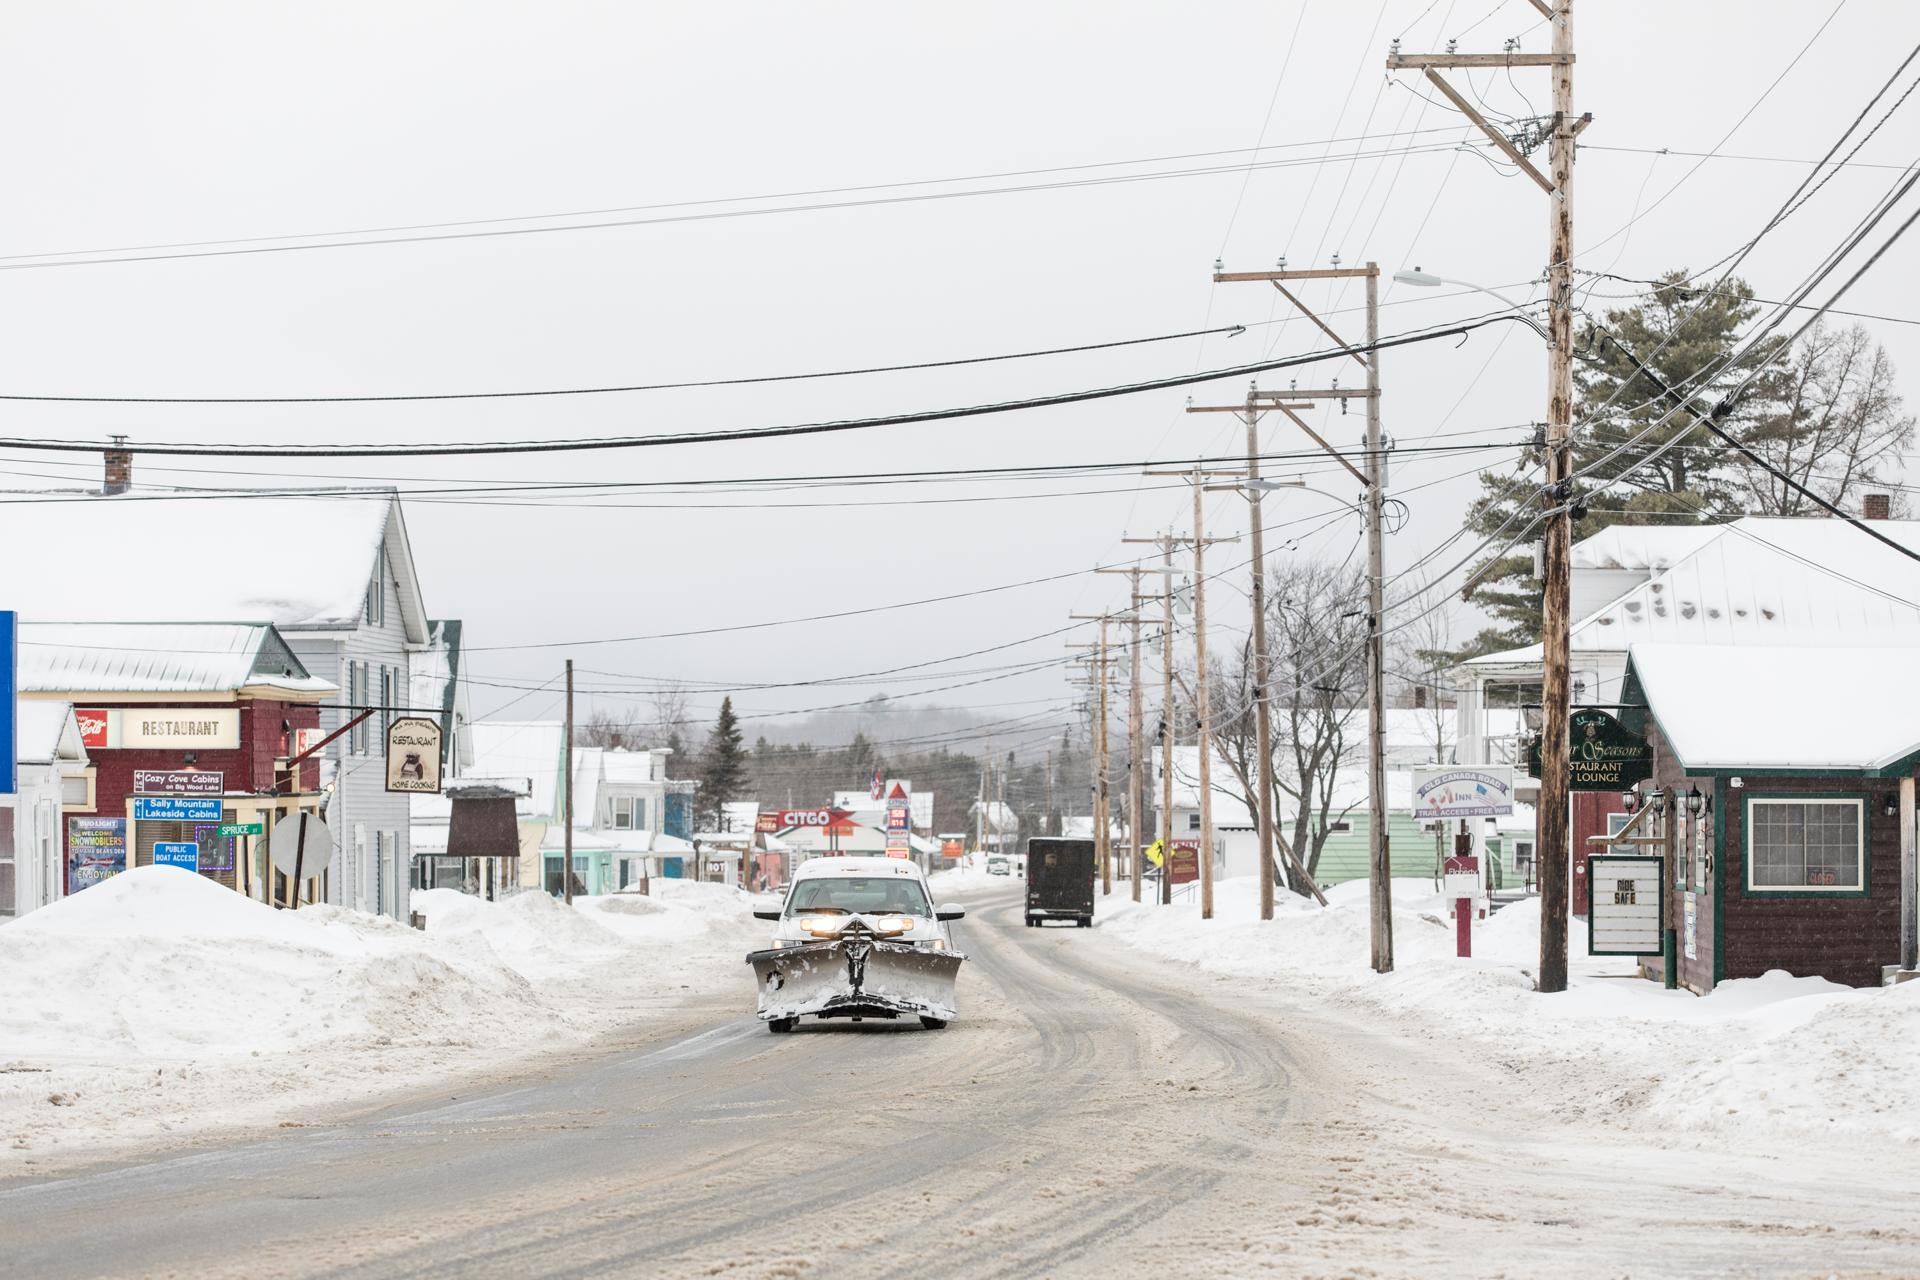 Route 201 passes right through the heart of Jackman, Maine. This week, the town gained national attention as Town Manager Tom Kawczynski's white nationalist views became public.